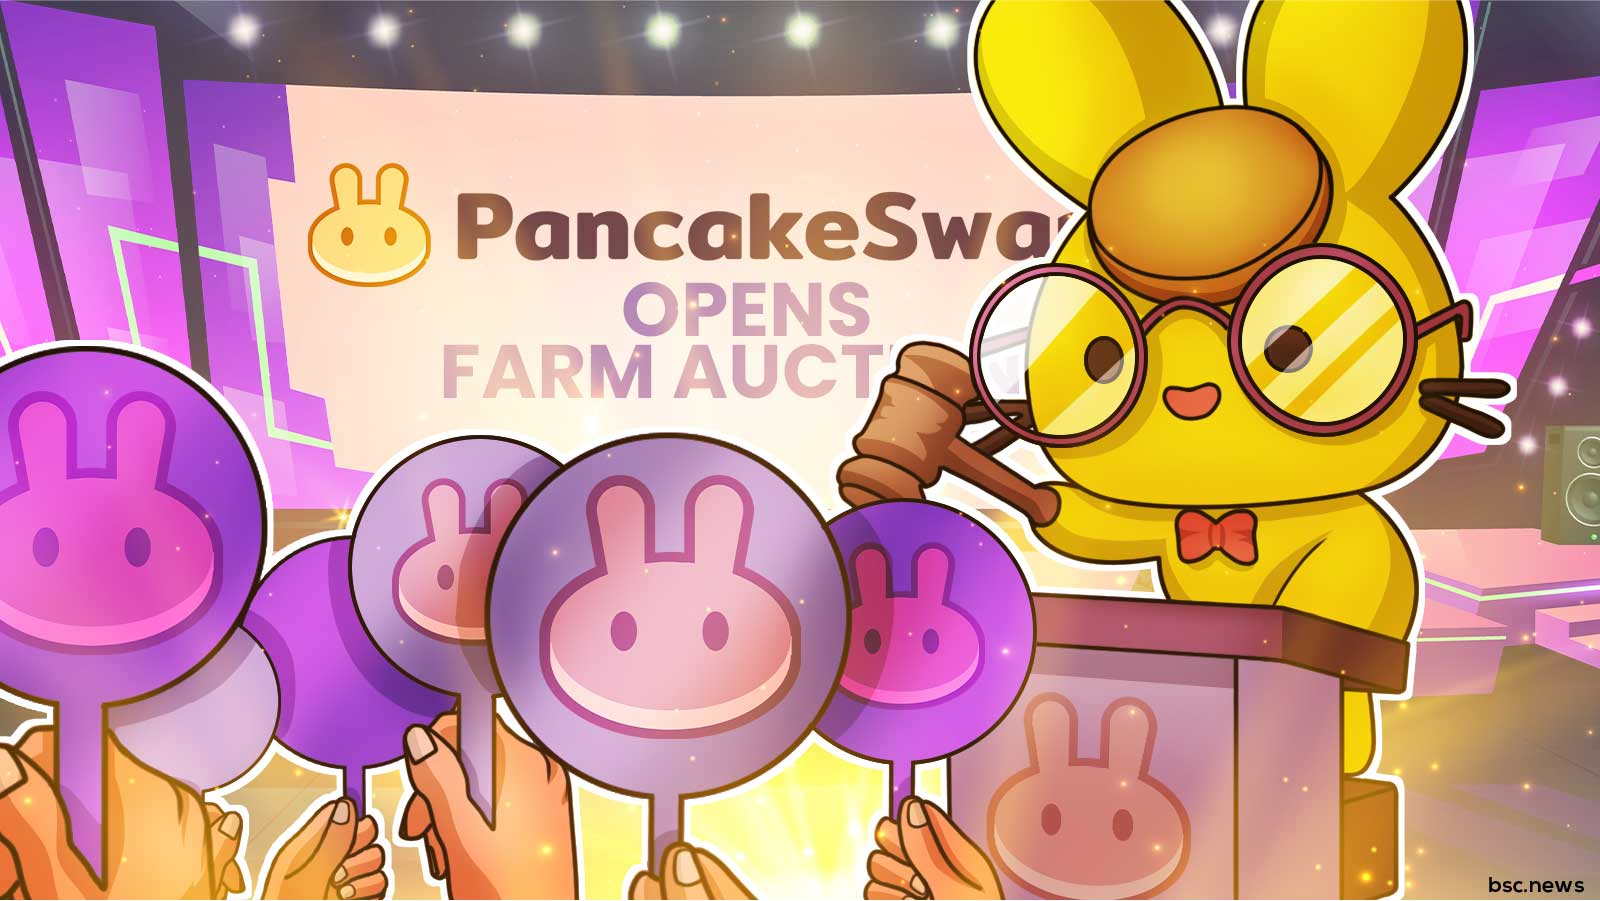 PancakeSwap Opens Farm Auctions, Allowing Projects to Bootstrap Initial Liquidity and Yield Farming